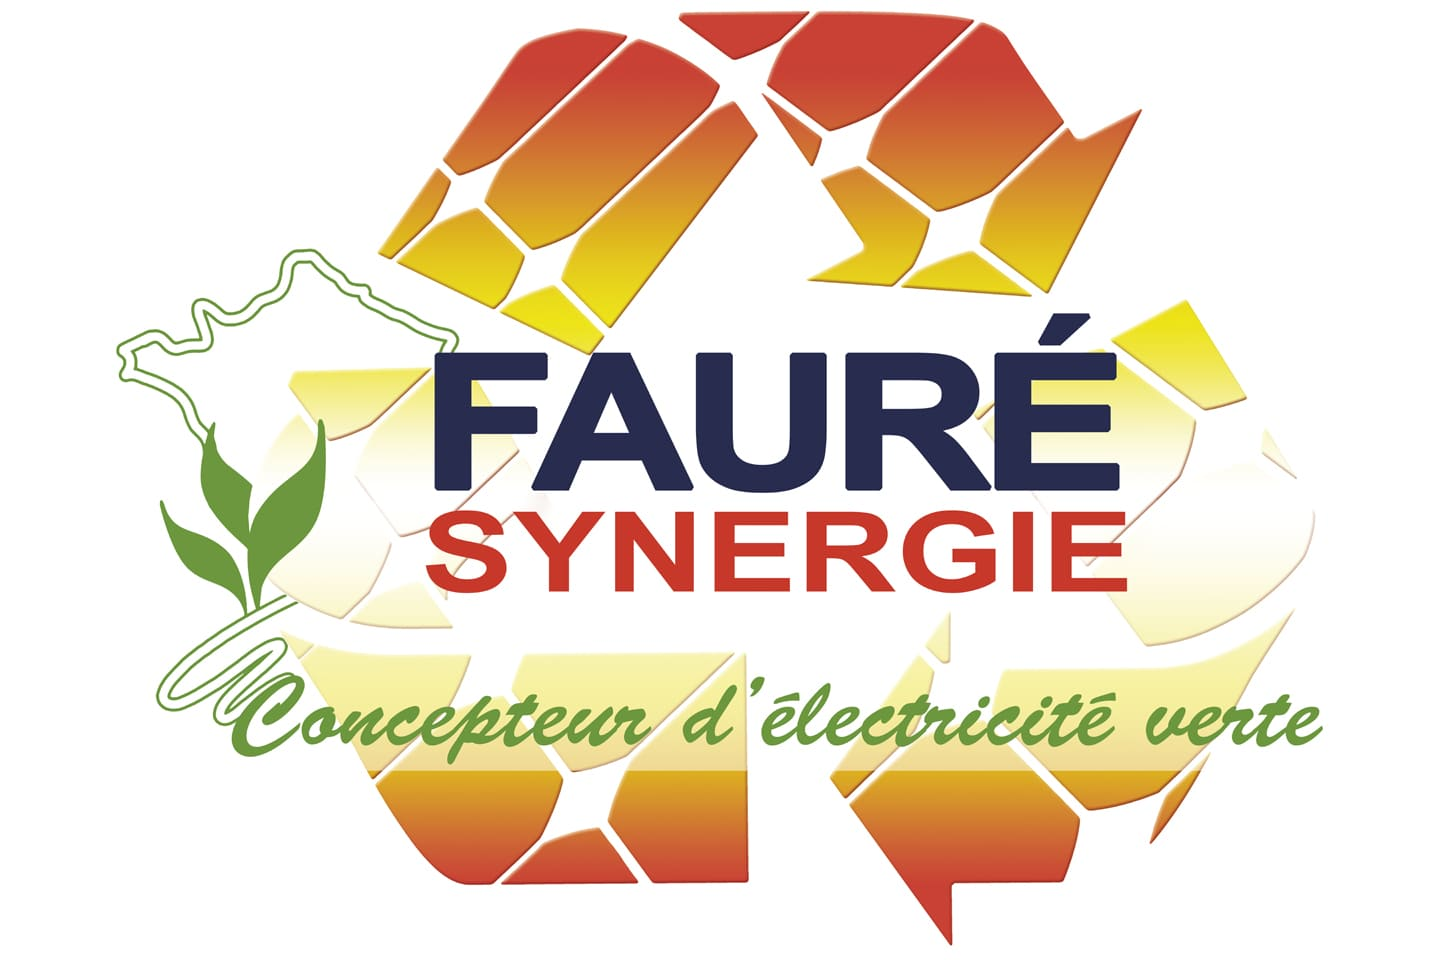 Image Fauré Synergie